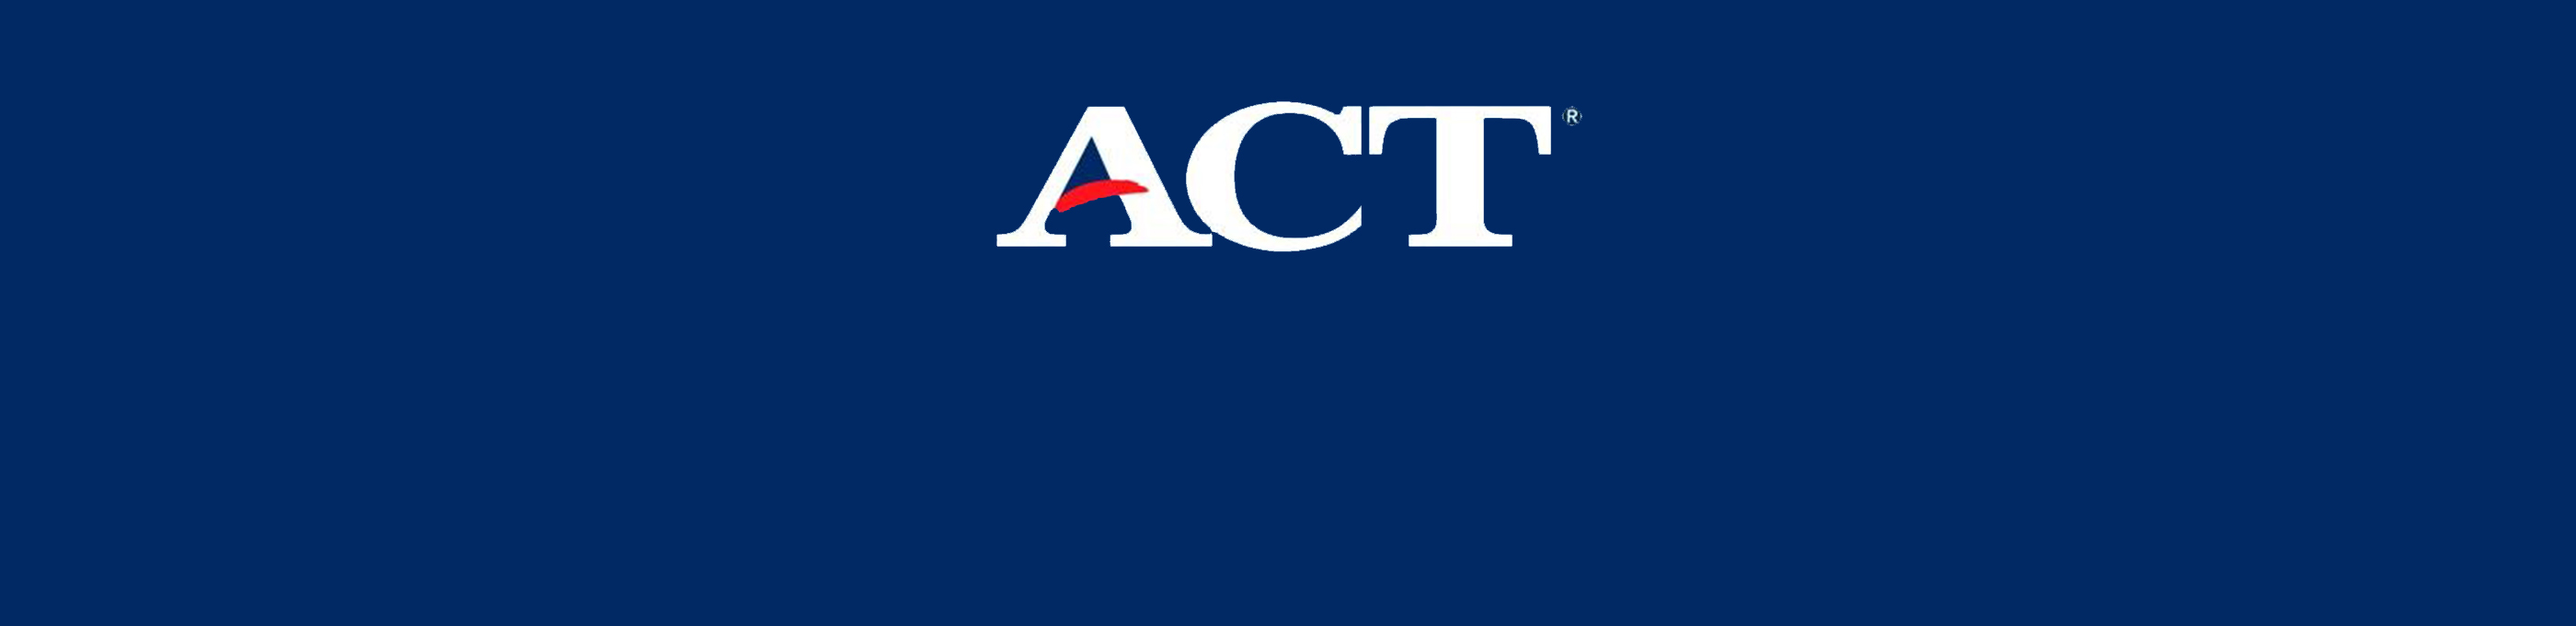 Take ACT-ion for your college career